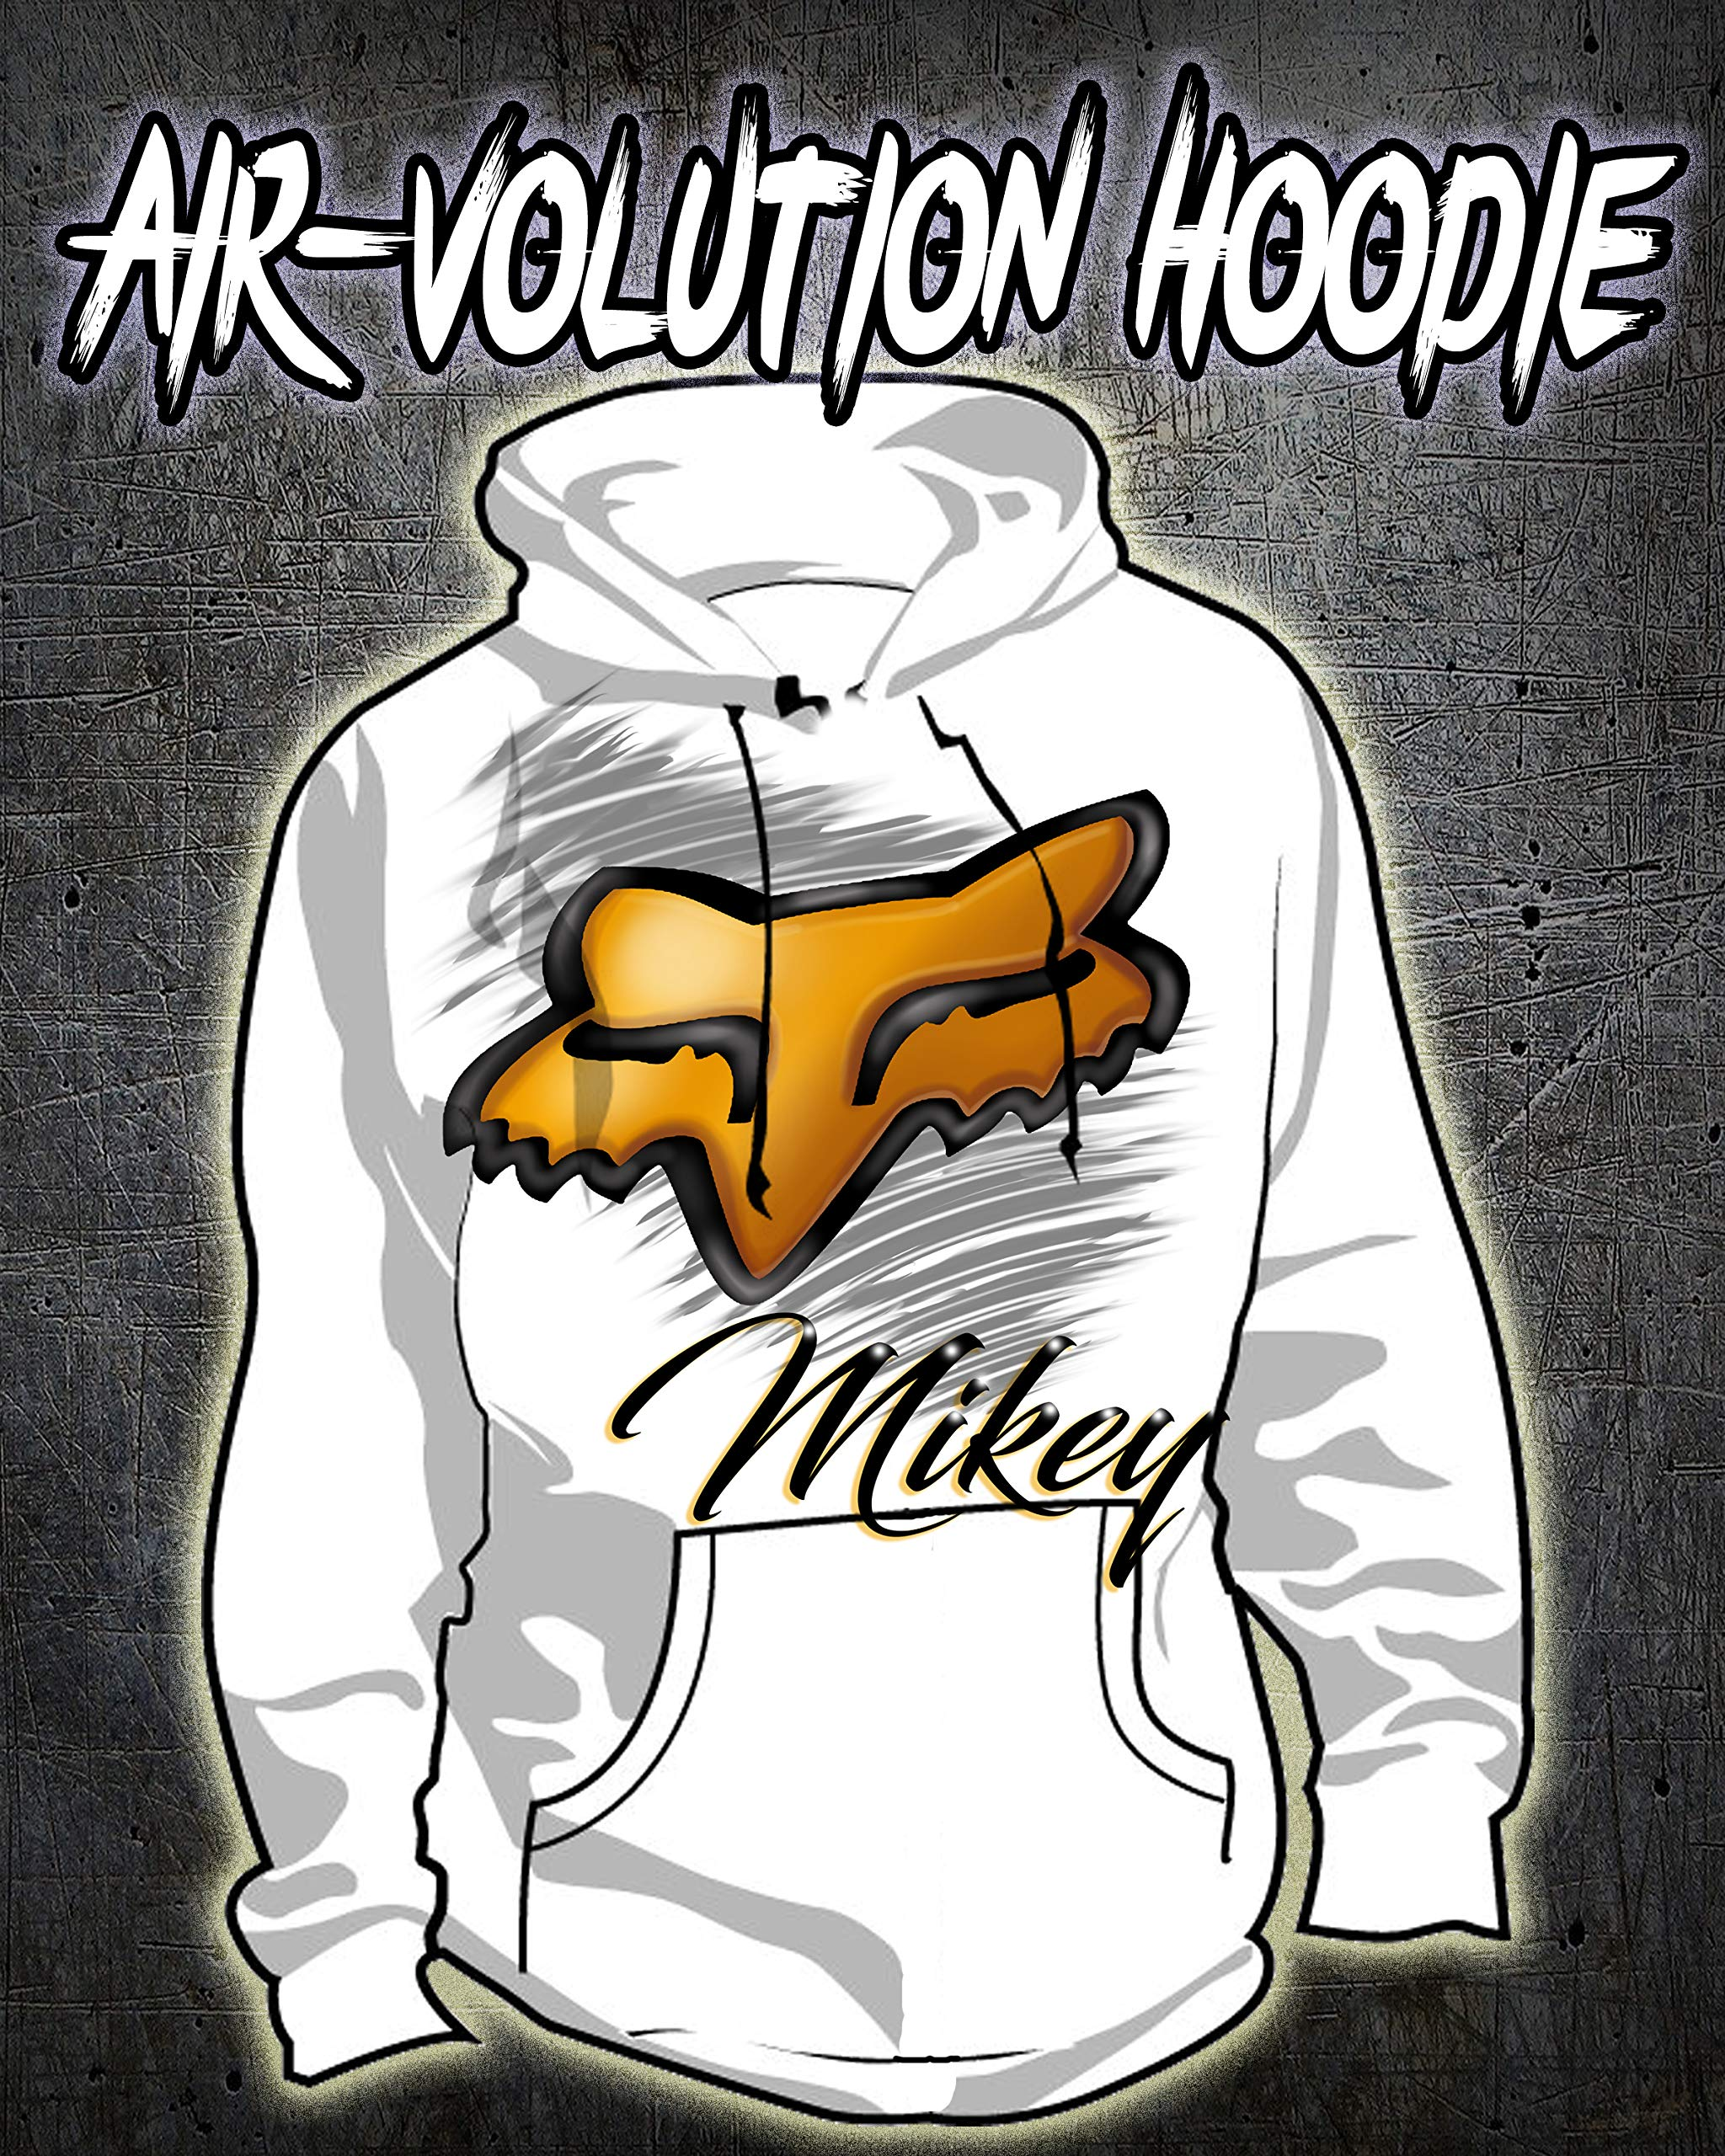 Personalized Airbrush Fox Hoodie by Mythic Airbrush